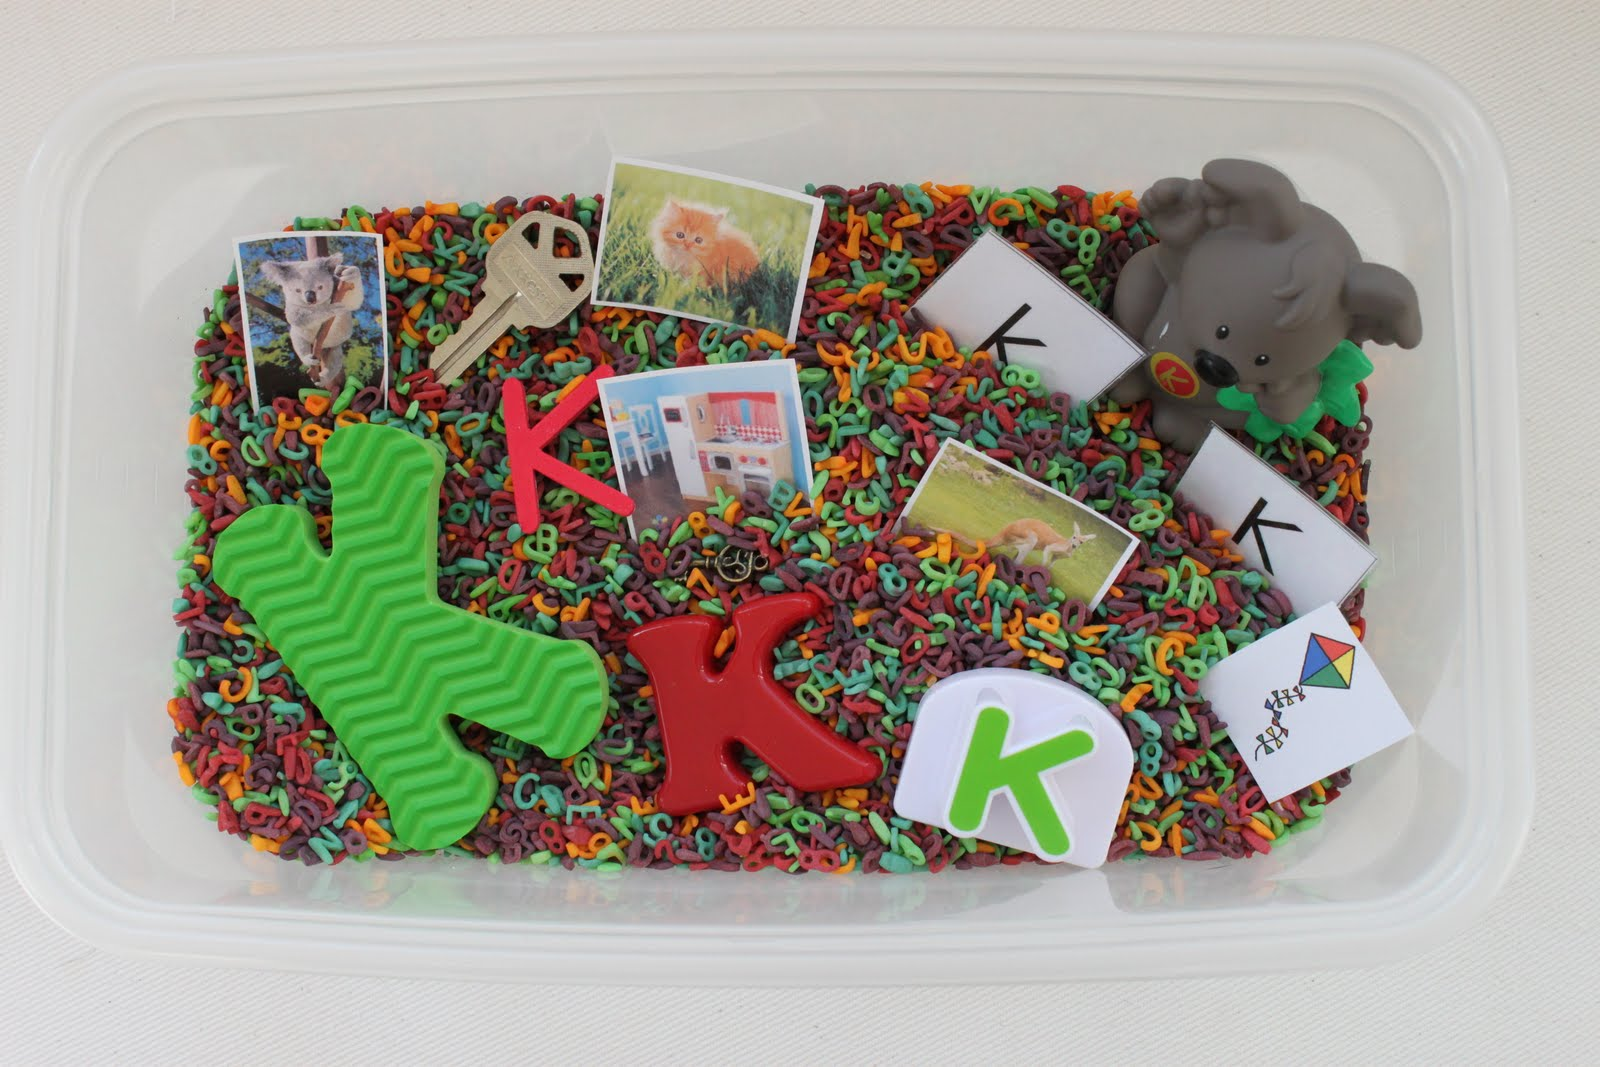 Objects Start with Letter I http://playinghouseinmaryland.blogspot.com/2011/05/abc-fun-letter-k.html